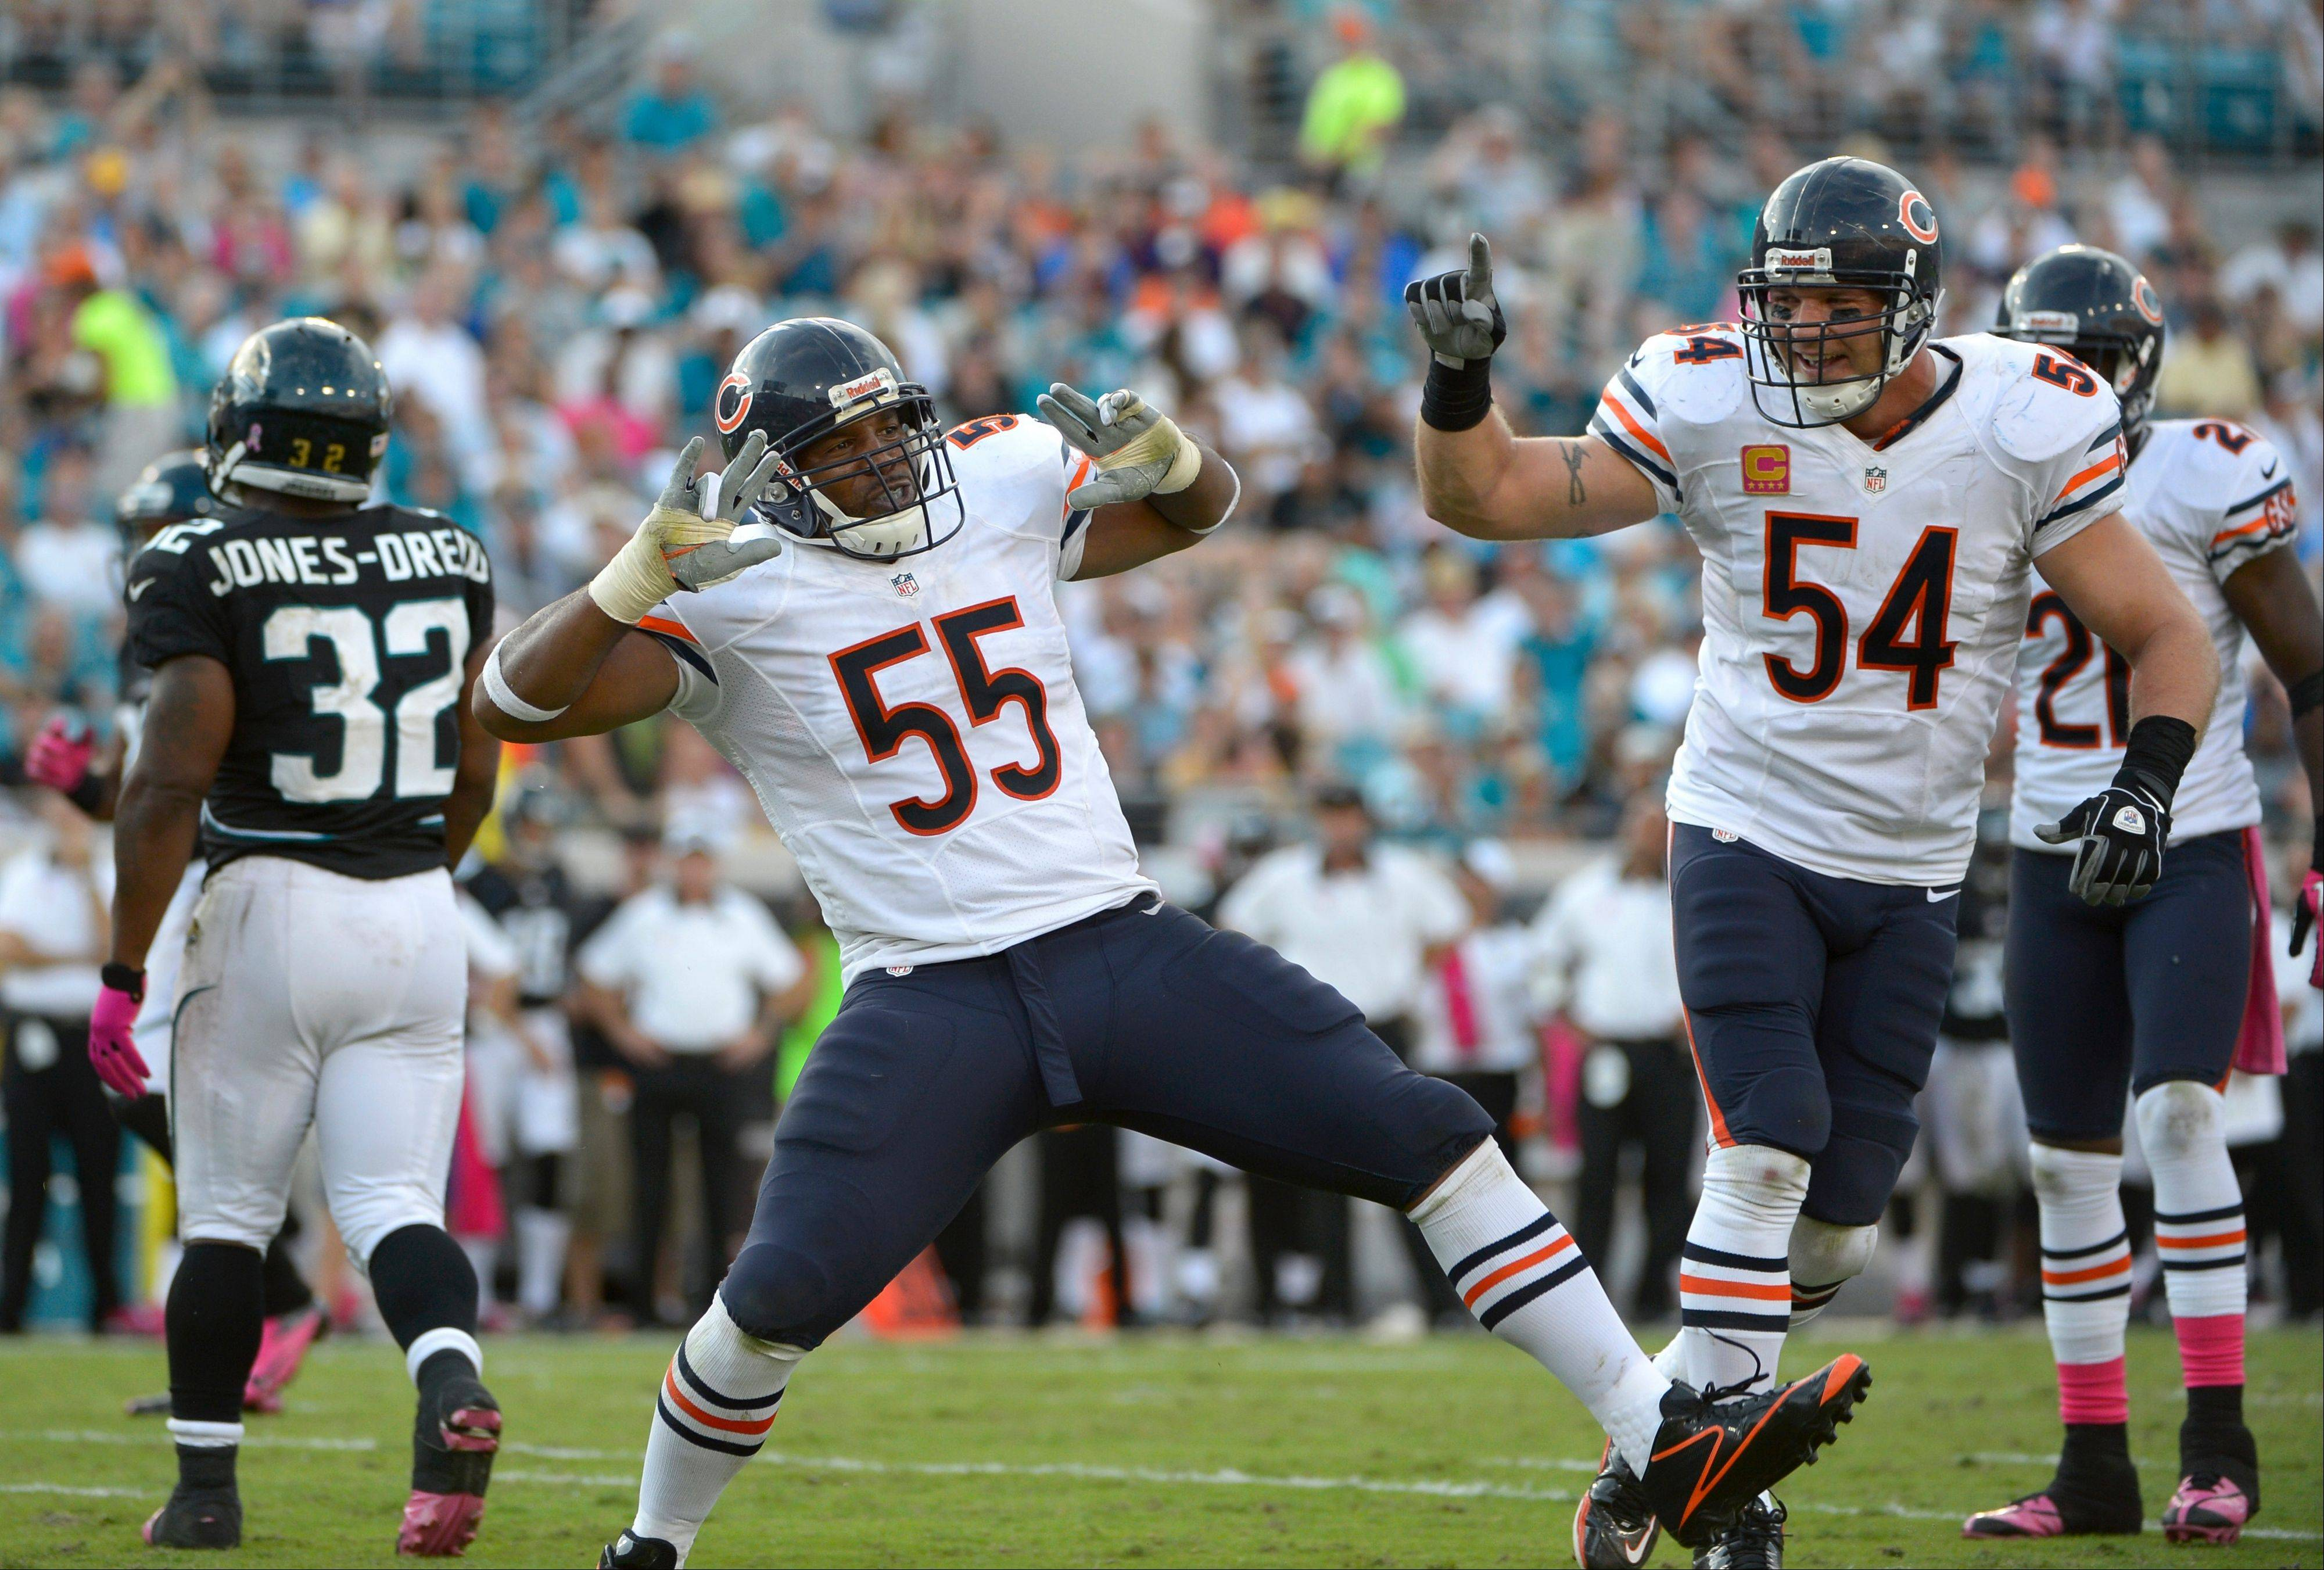 Chicago Bears outside linebacker Lance Briggs (55) and middle linebacker Brian Urlacher (54) celebrate after Briggs sacked Jacksonville Jaguars quarterback Blaine Gabbert during the second half of an NFL football game in Jacksonville, Fla., Sunday, Oct. 7, 2012. The Bears won 41-3.